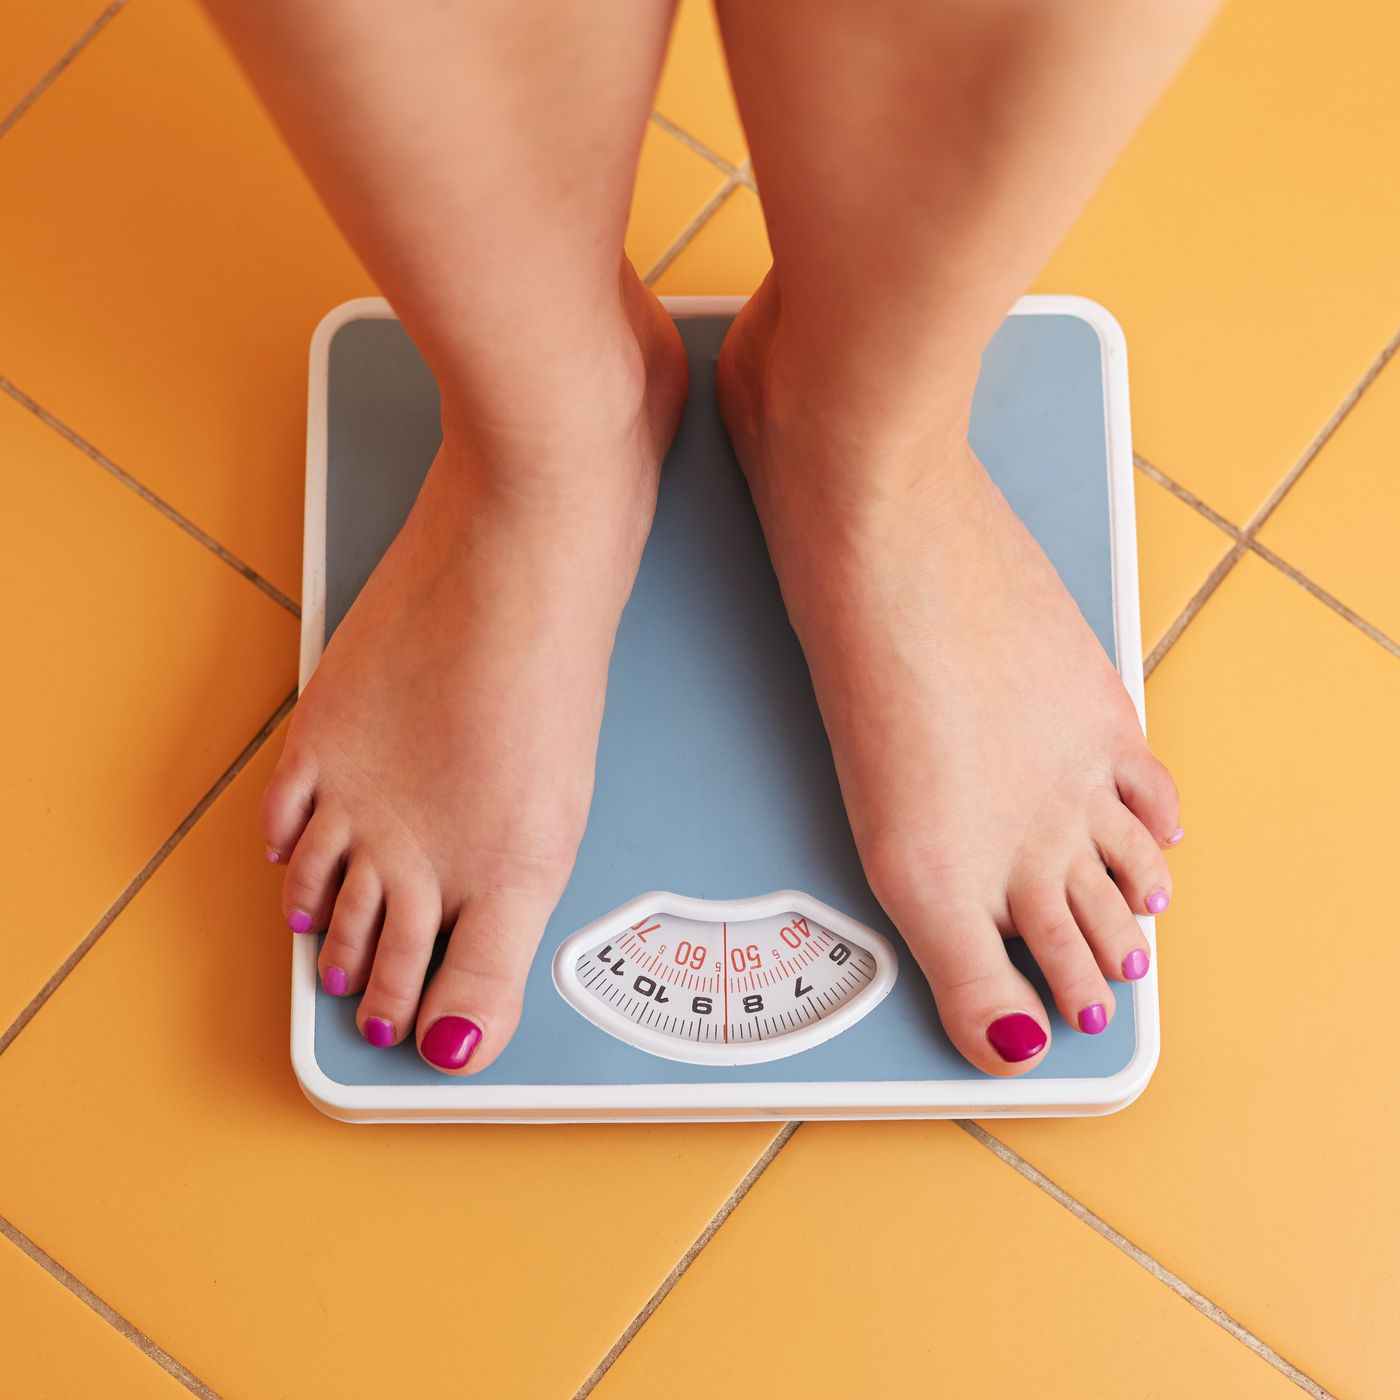 Surprisingly Simple Tips From 20 Experts About How To Lose Weight And Keep It Off Vox